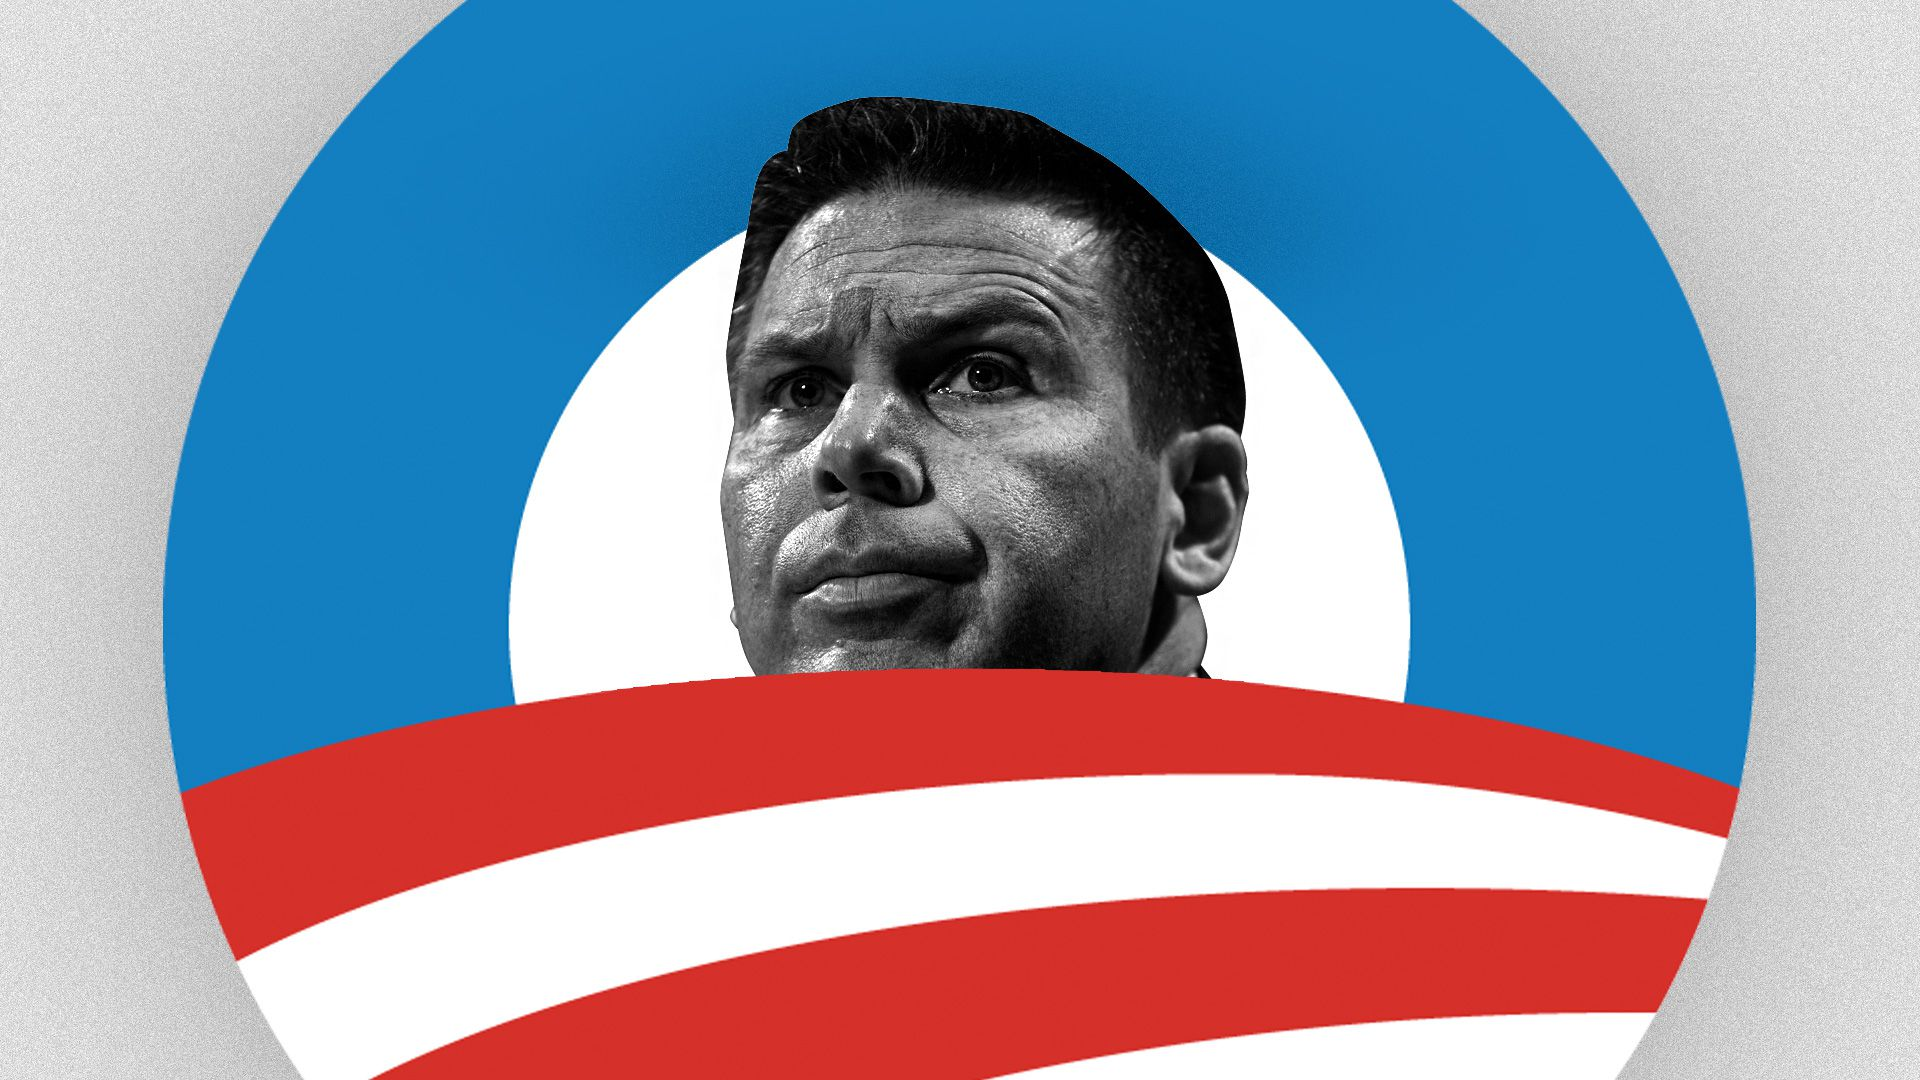 illustration of Kevin McAleenan emerging from an Obama campaign logo